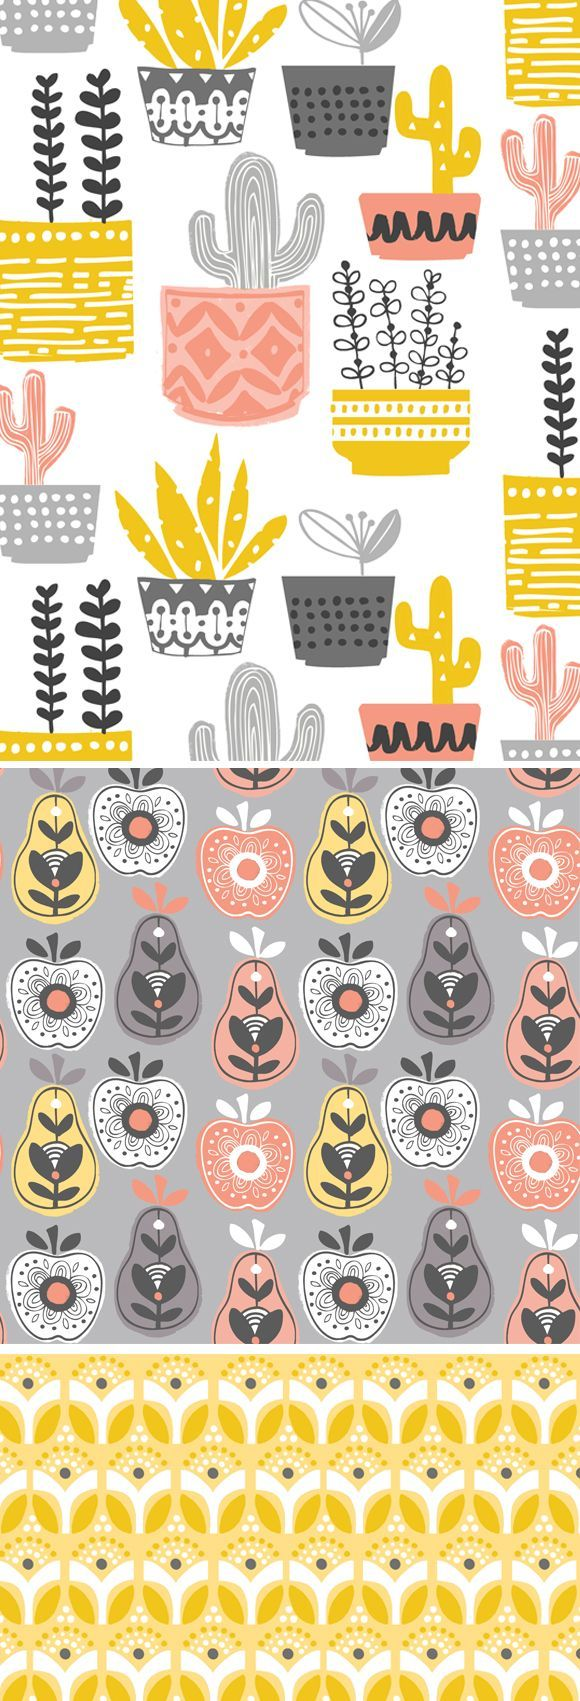 Wendy Kendall Designs Freelance Surface Pattern Designer Cactus